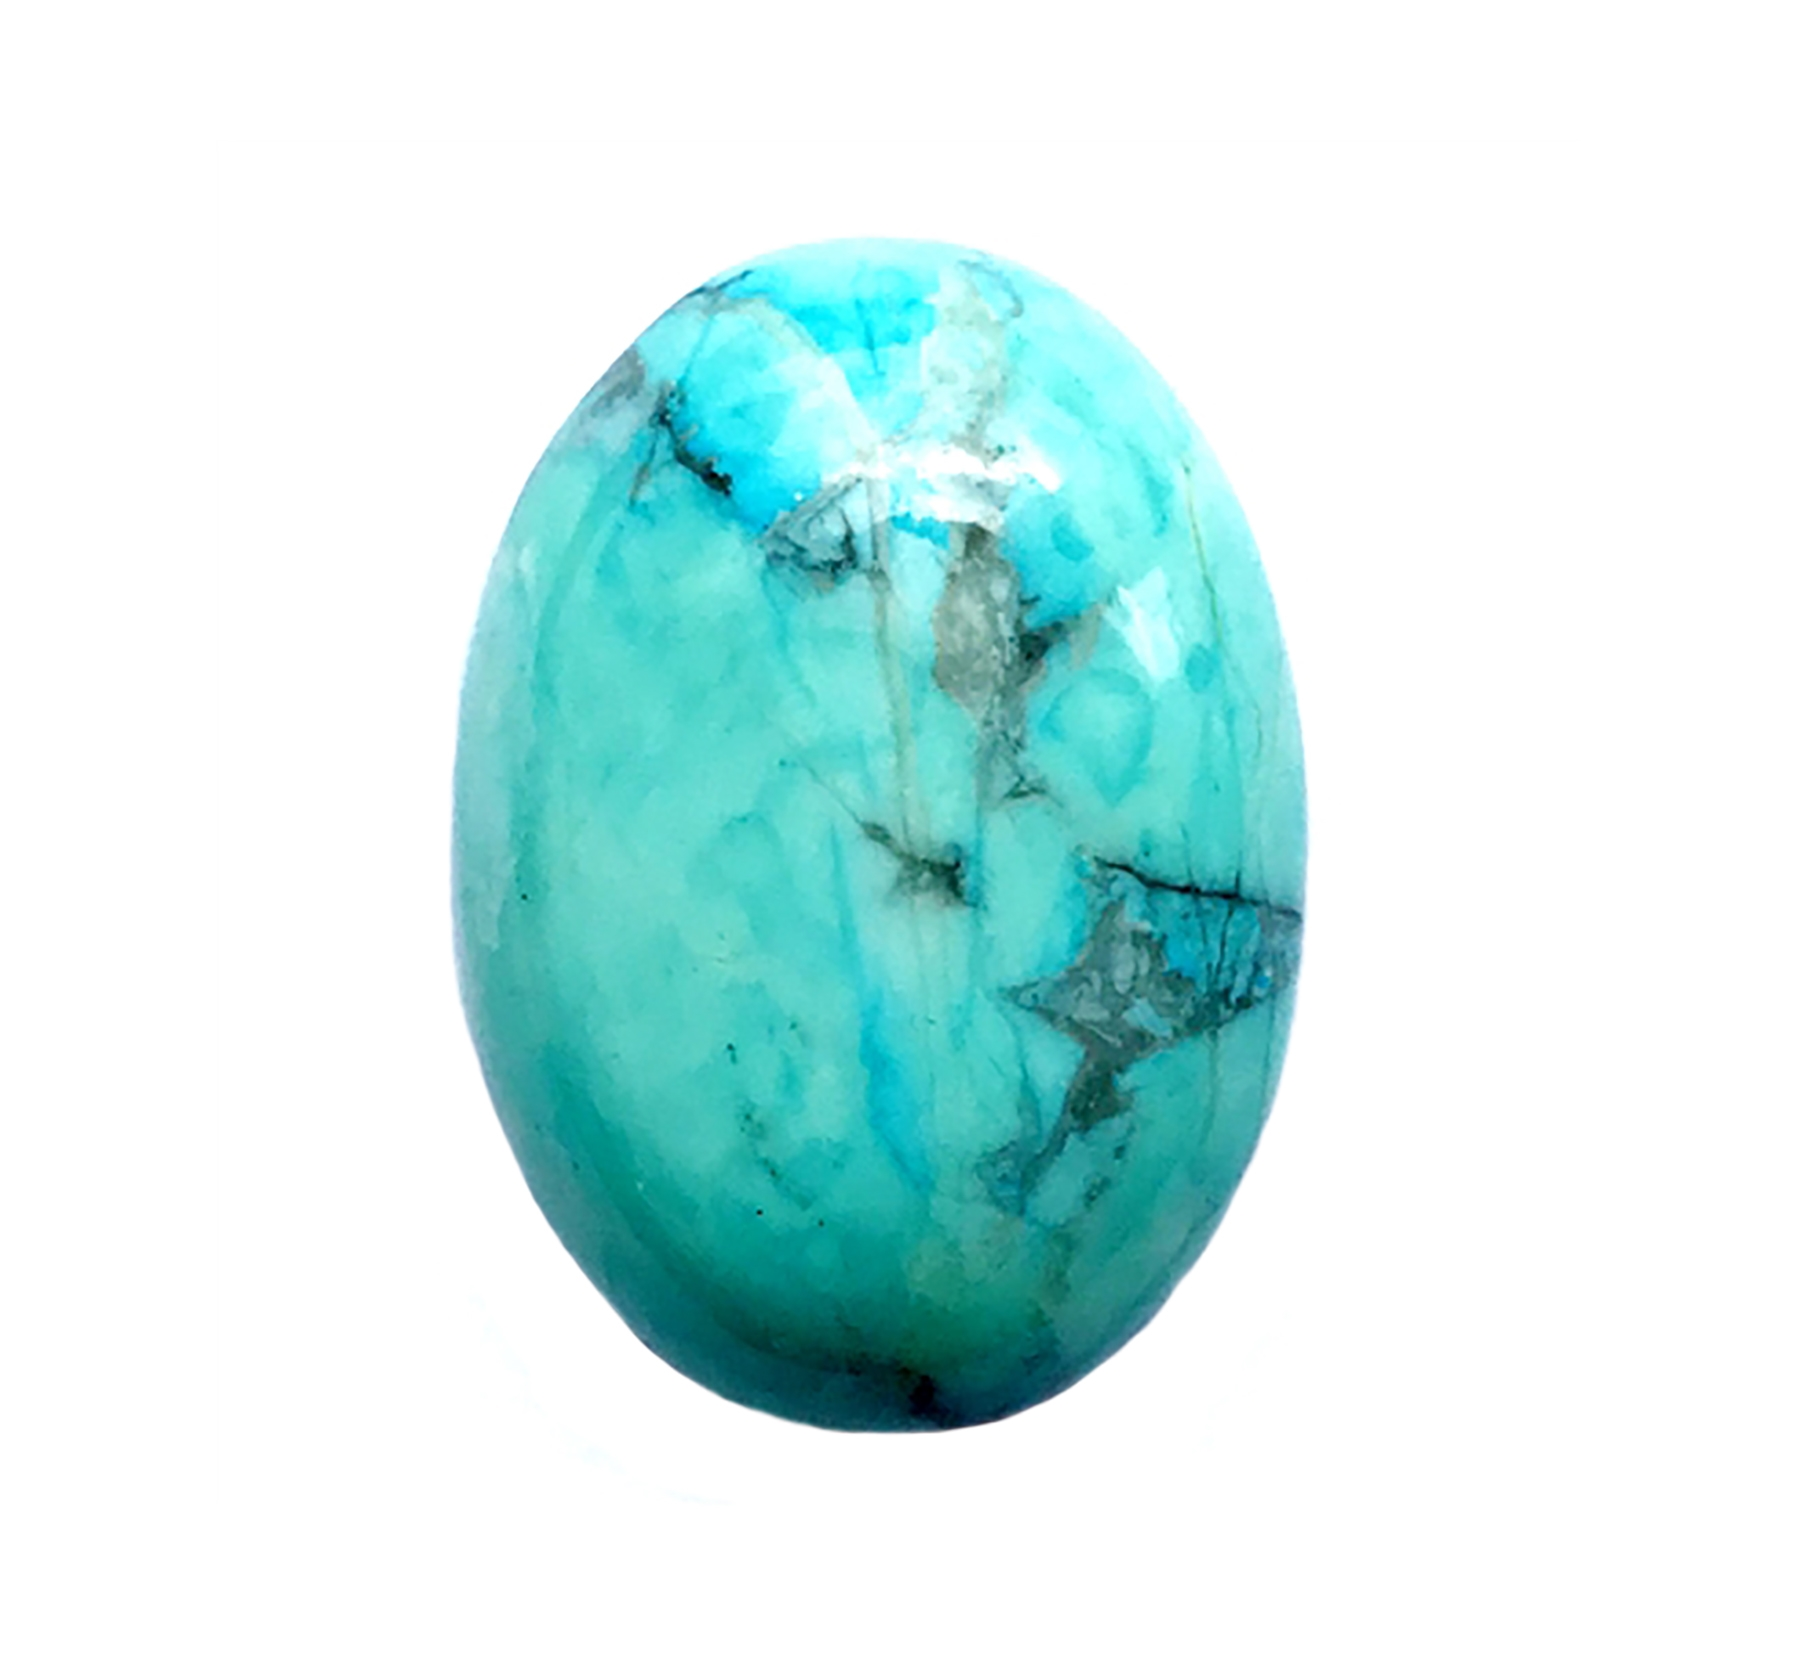 semi precious stones, turquoise, Chinese turquoise focal stone, 25x18mm stone cabochon, cabochon stone, natural stone, dyed howlite, turquoise blue, black matrix stone, semi precious cabochon, 25x18mm, cab stone, B'sue Boutiques,cabochon, mssp219